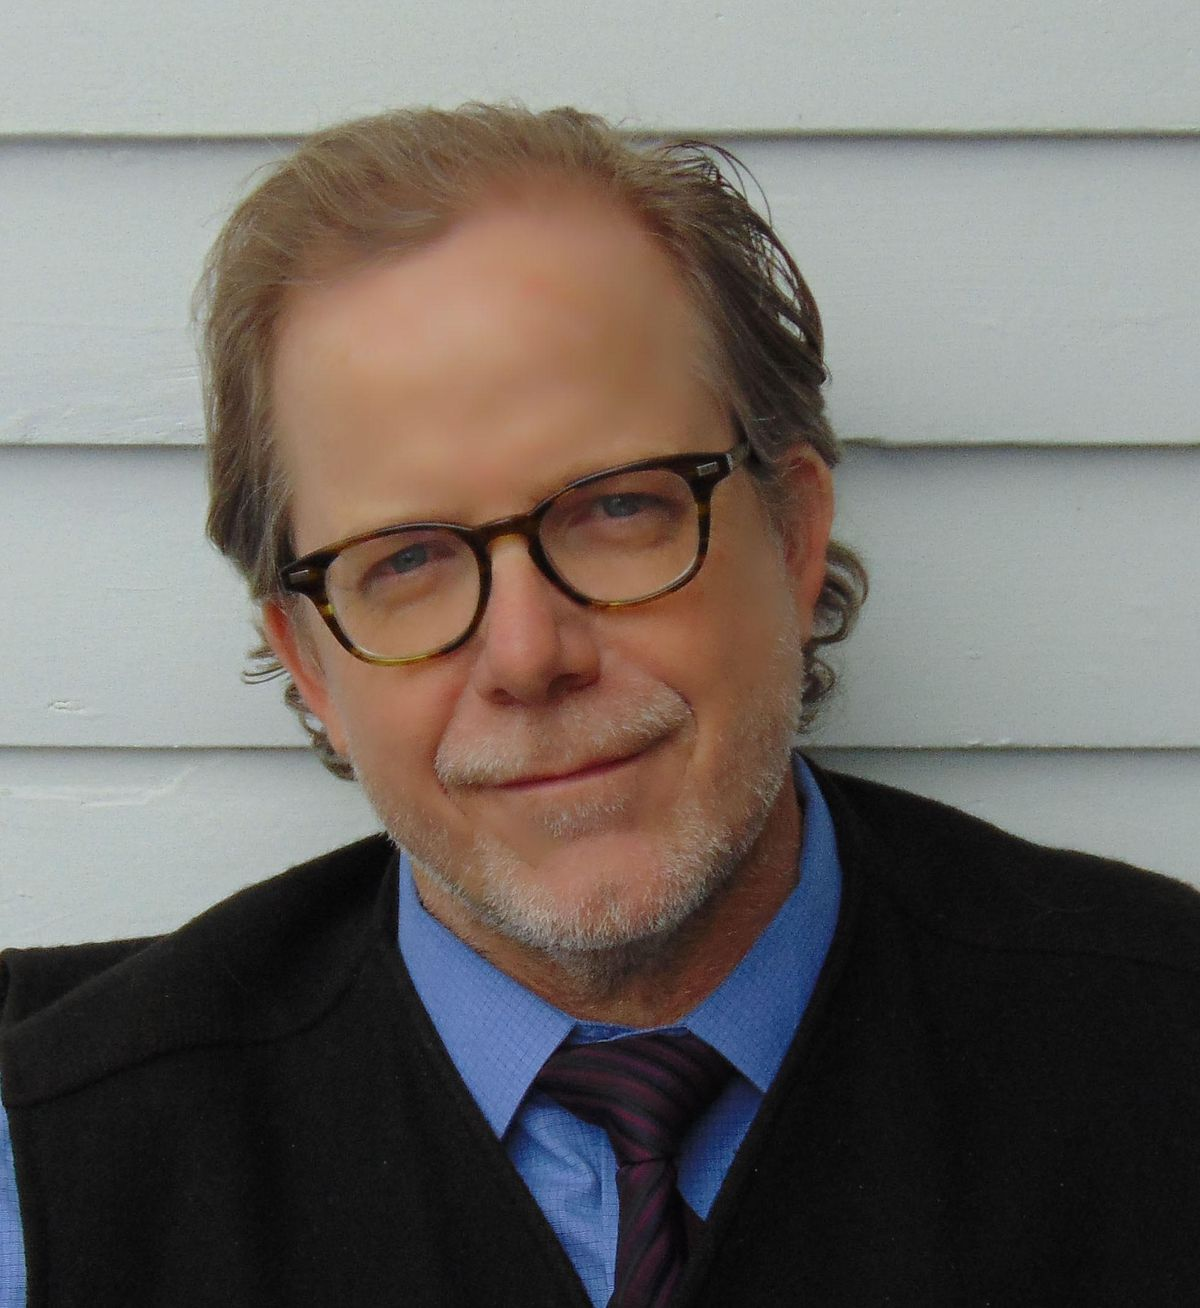 A man in glasses and a dark tie sits against a walls.